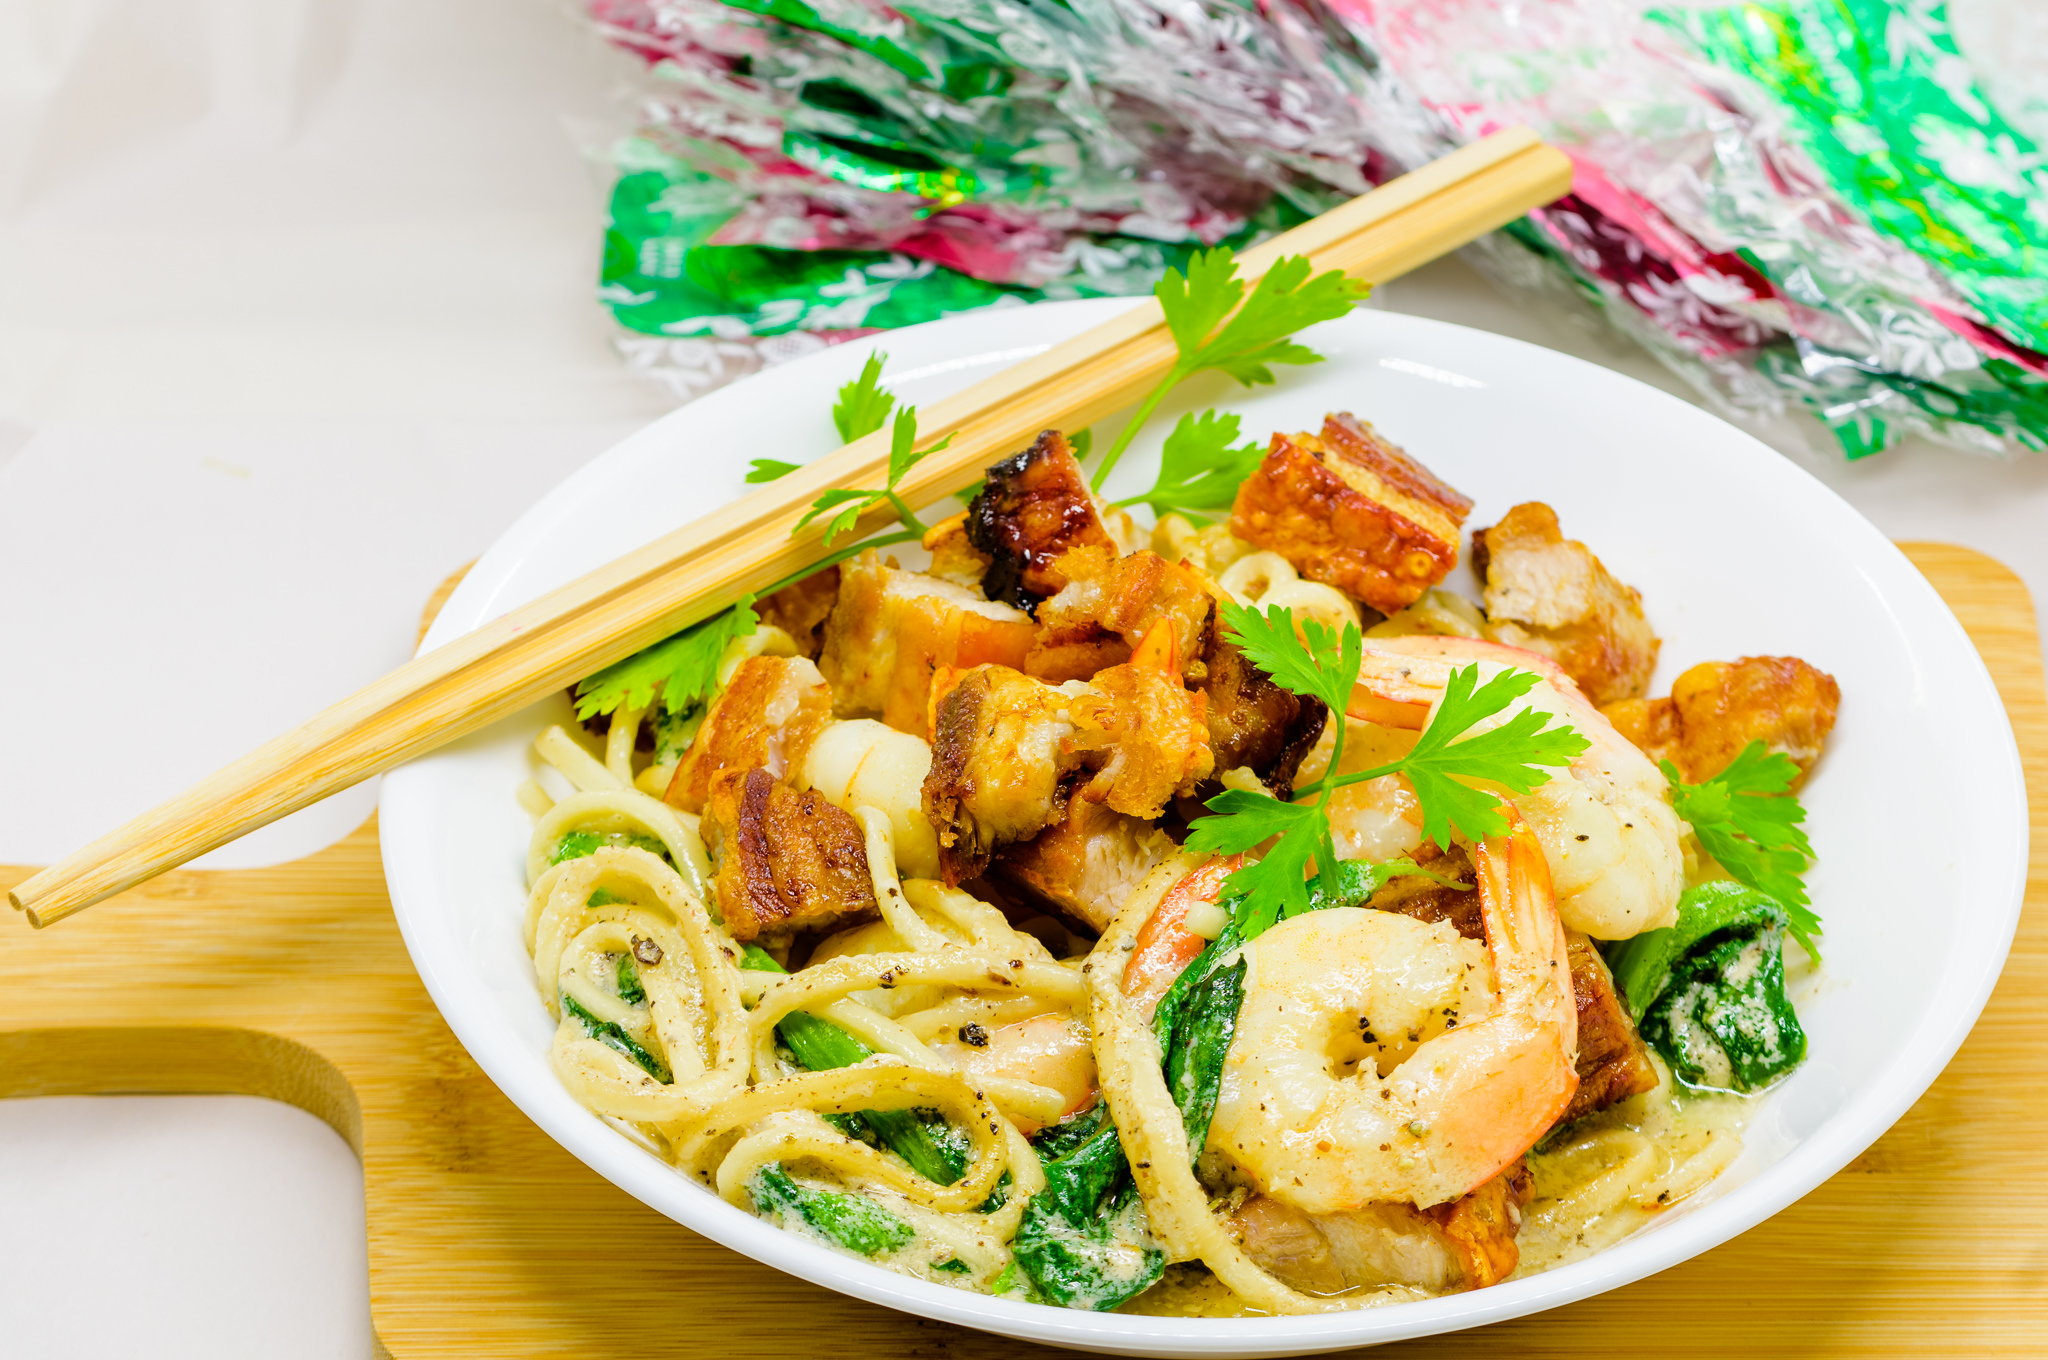 Garlic Udon noodles, coconut cream, pork belly, prawns, and choy sum